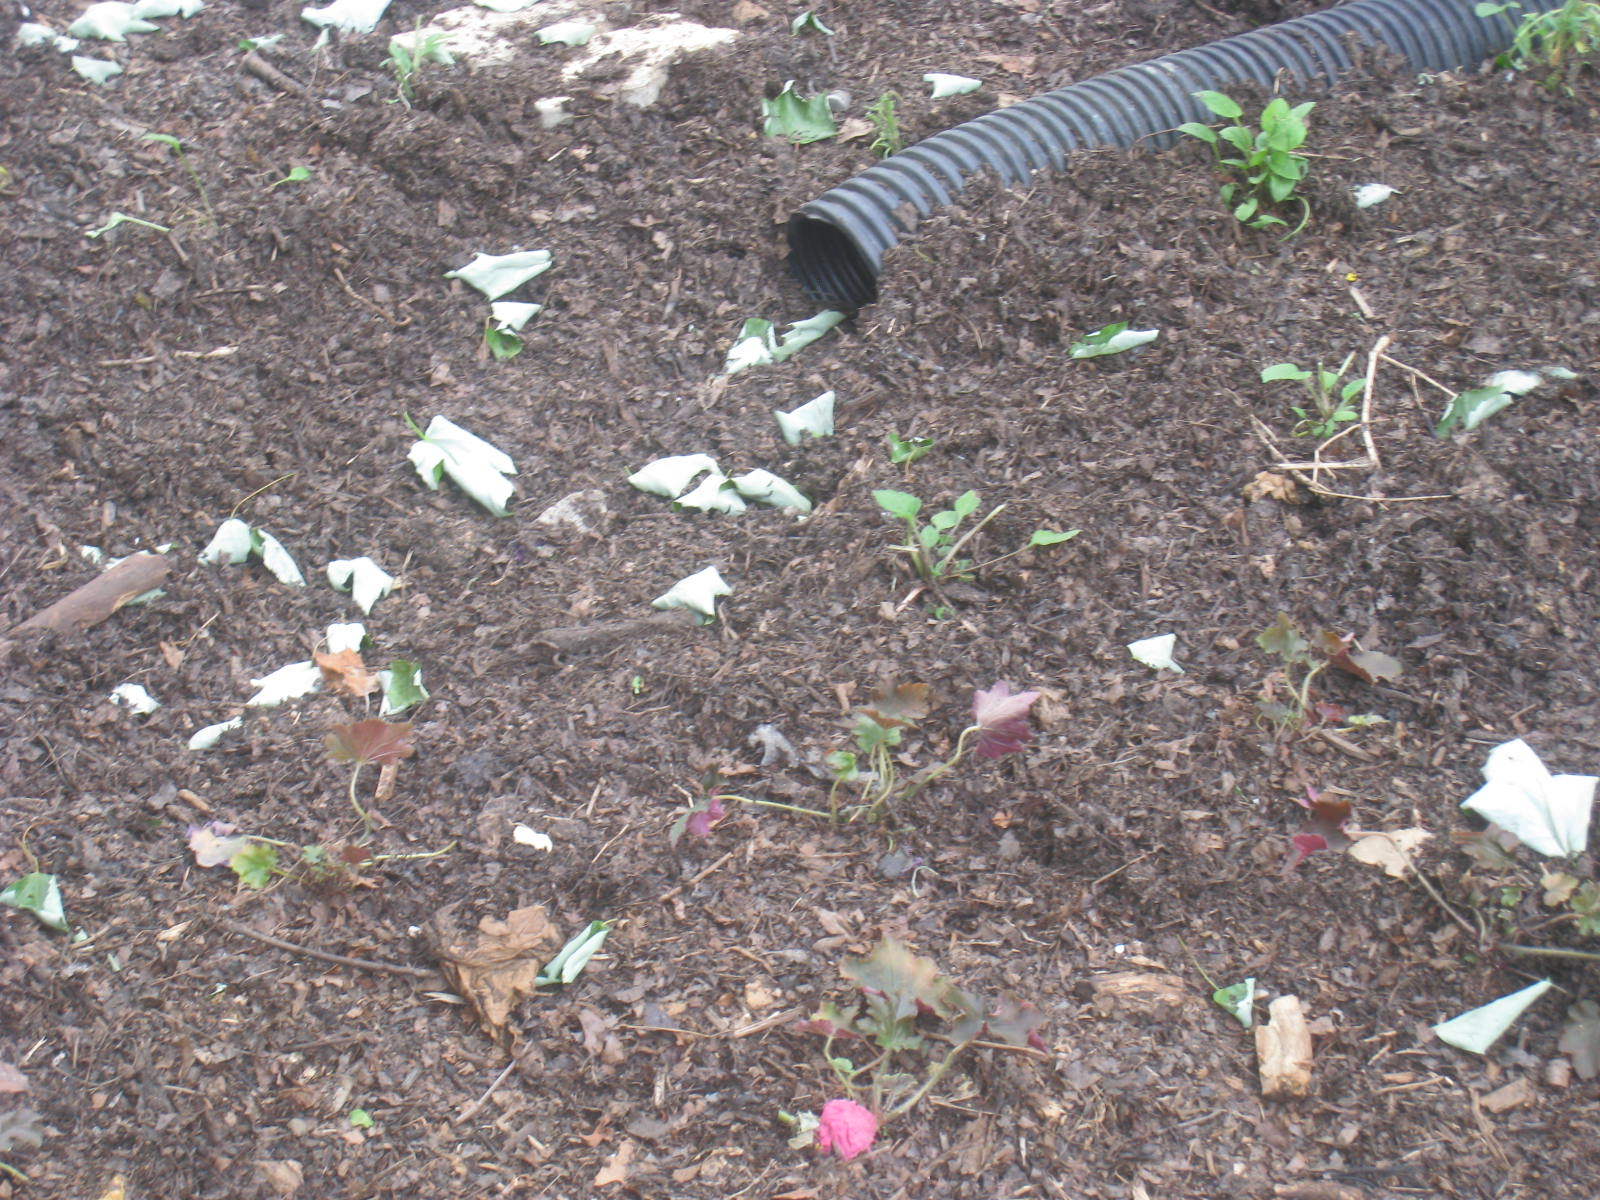 Raingarden to handle porch and mansard roof stormwater